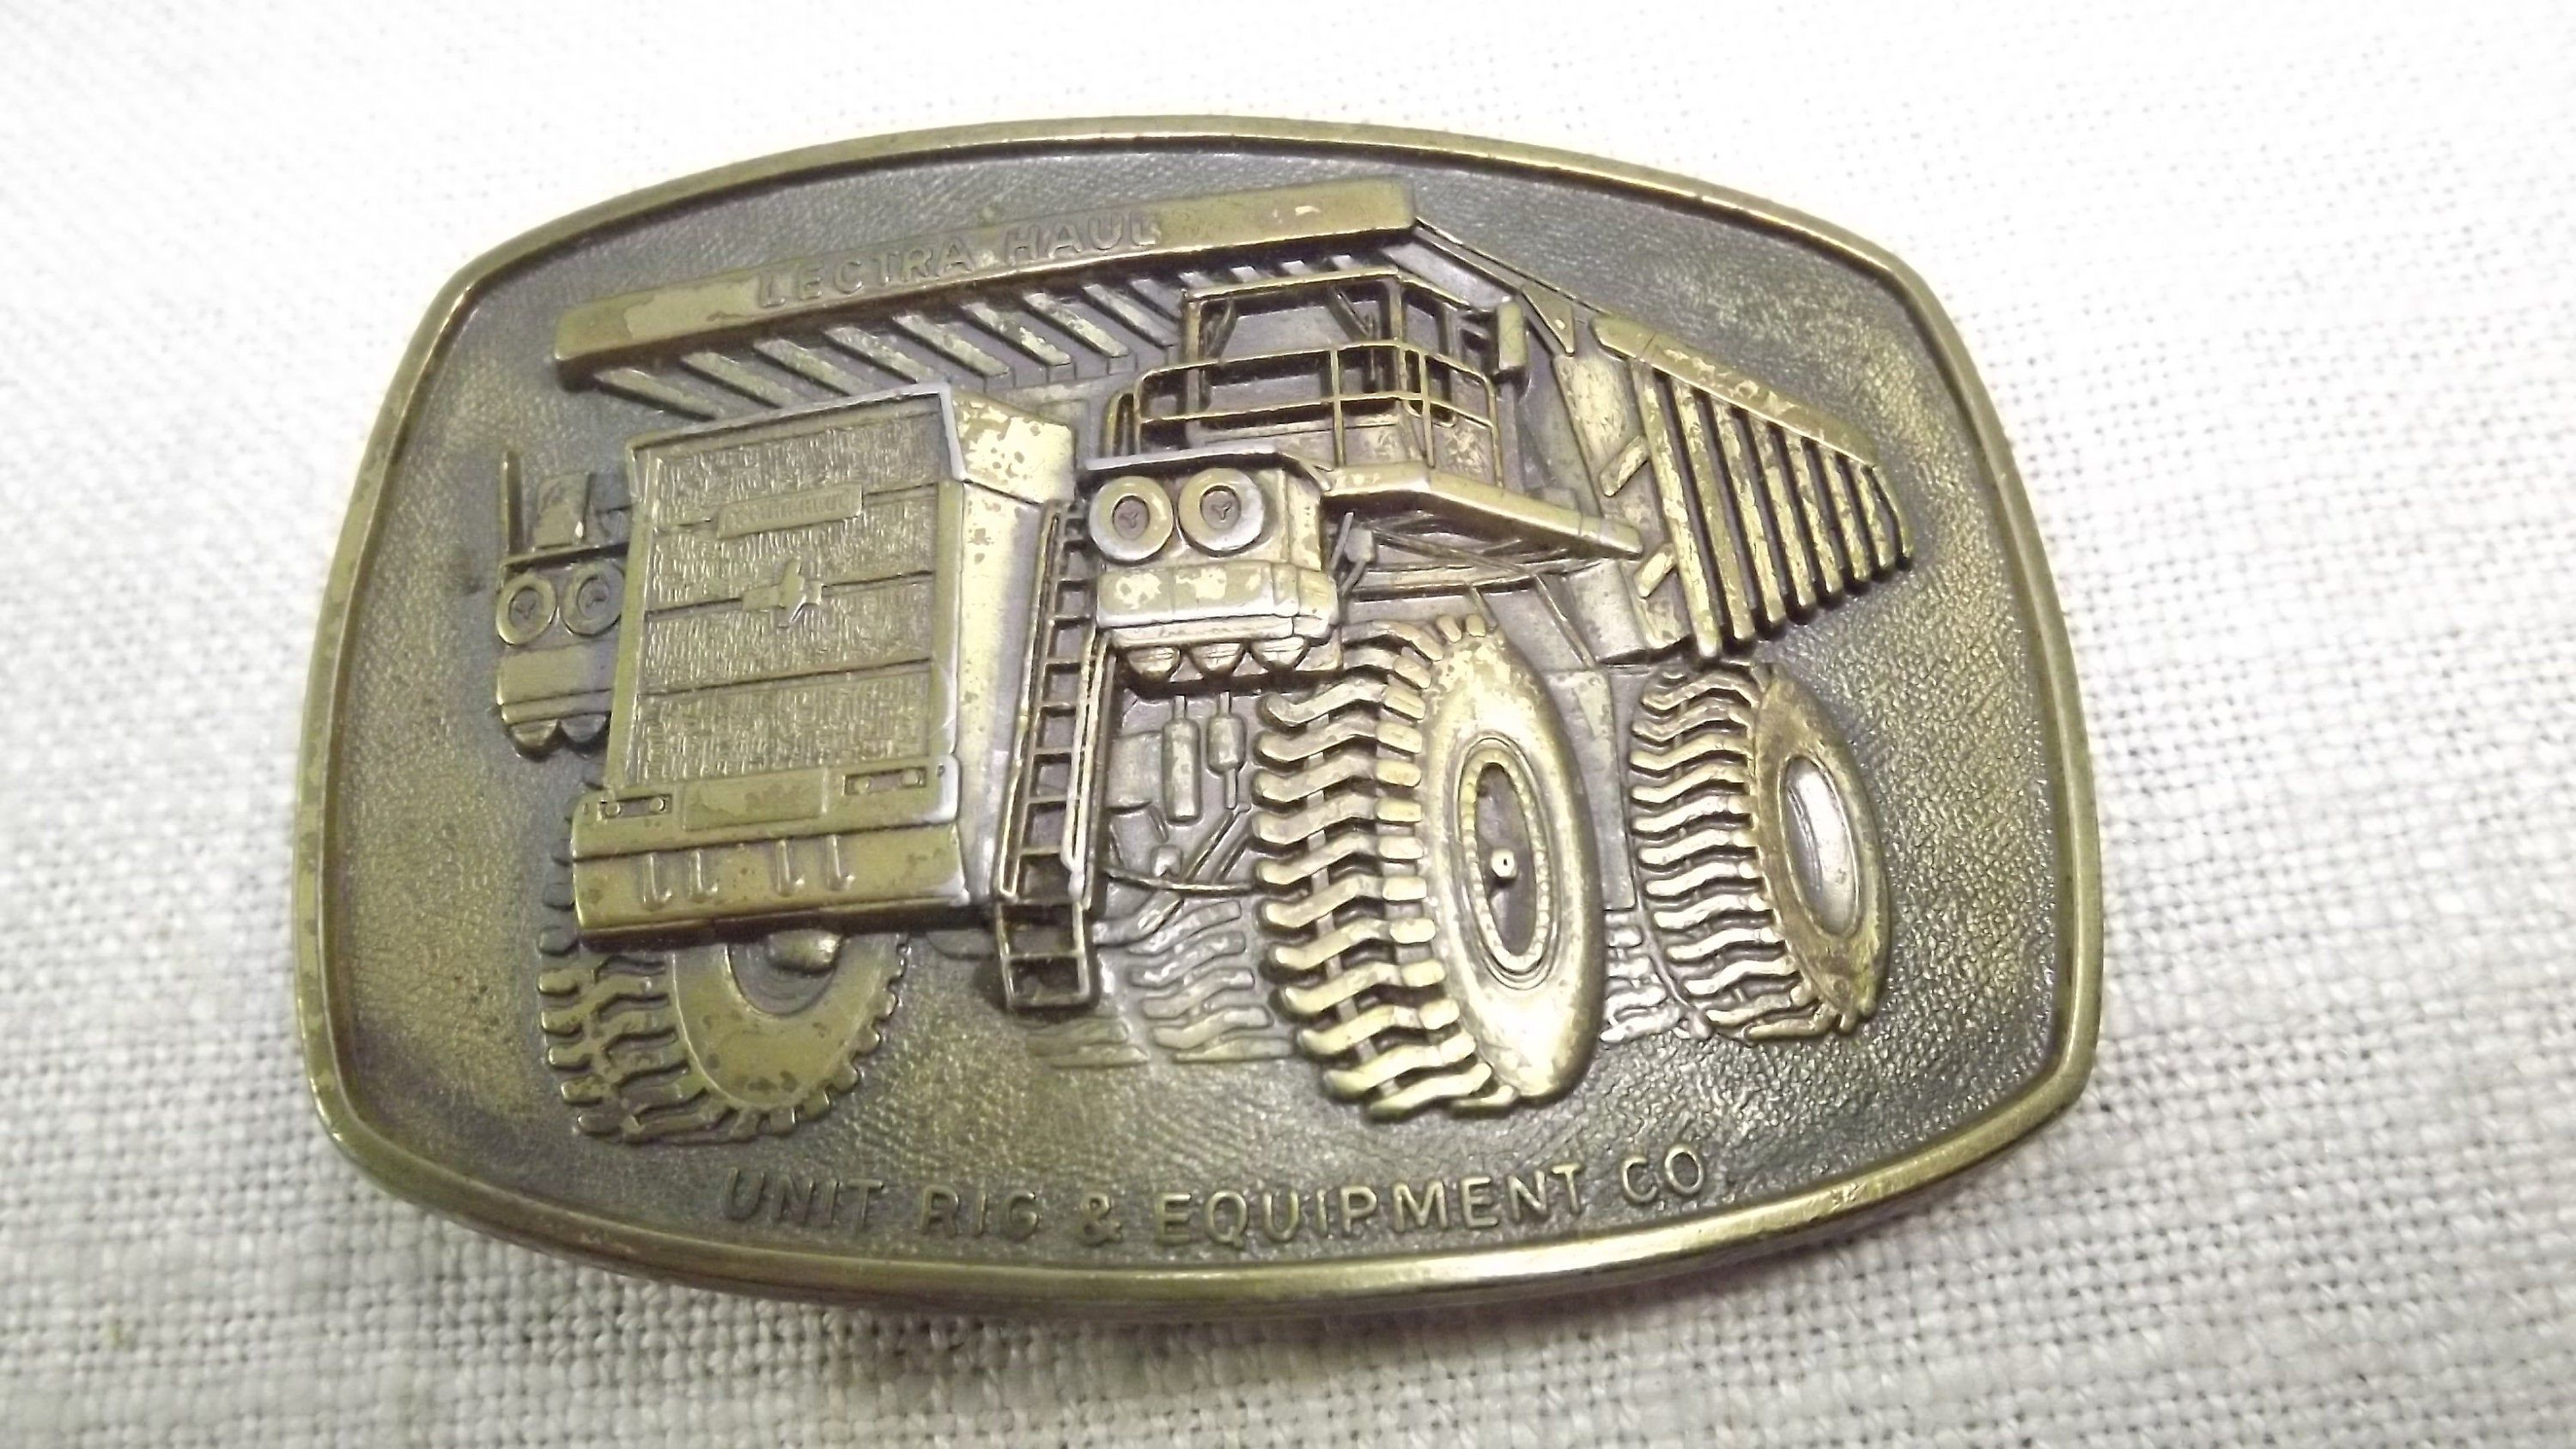 Distressed Brass Lectra Haul Belt Buckle, Vintage Heavy Equipment/Transportation Sector #pictureplacemeant